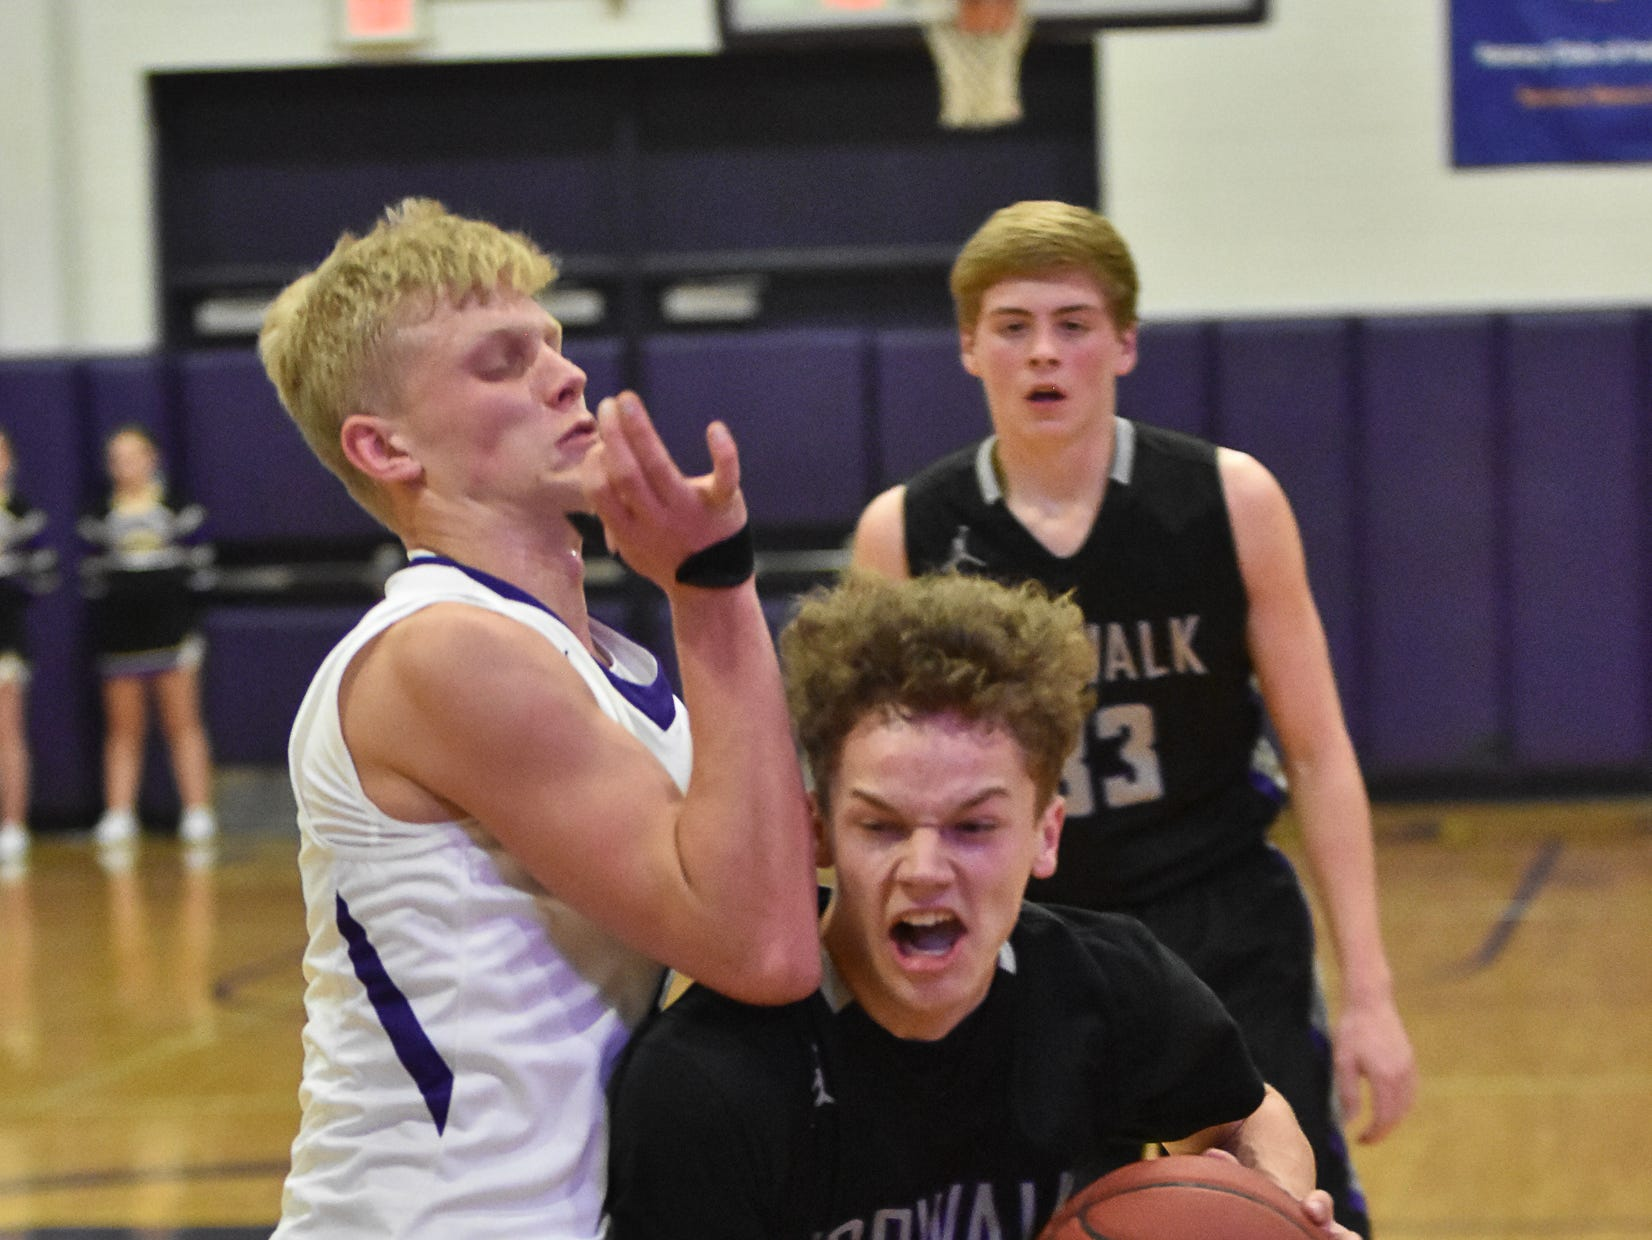 Indianola's Quinn Vesey guards Norwalk's Bowen Born. The Indianola boys slipped to 1-1 on the season with a 65-48 home loss to Norwalk on Nov. 30, 2018.